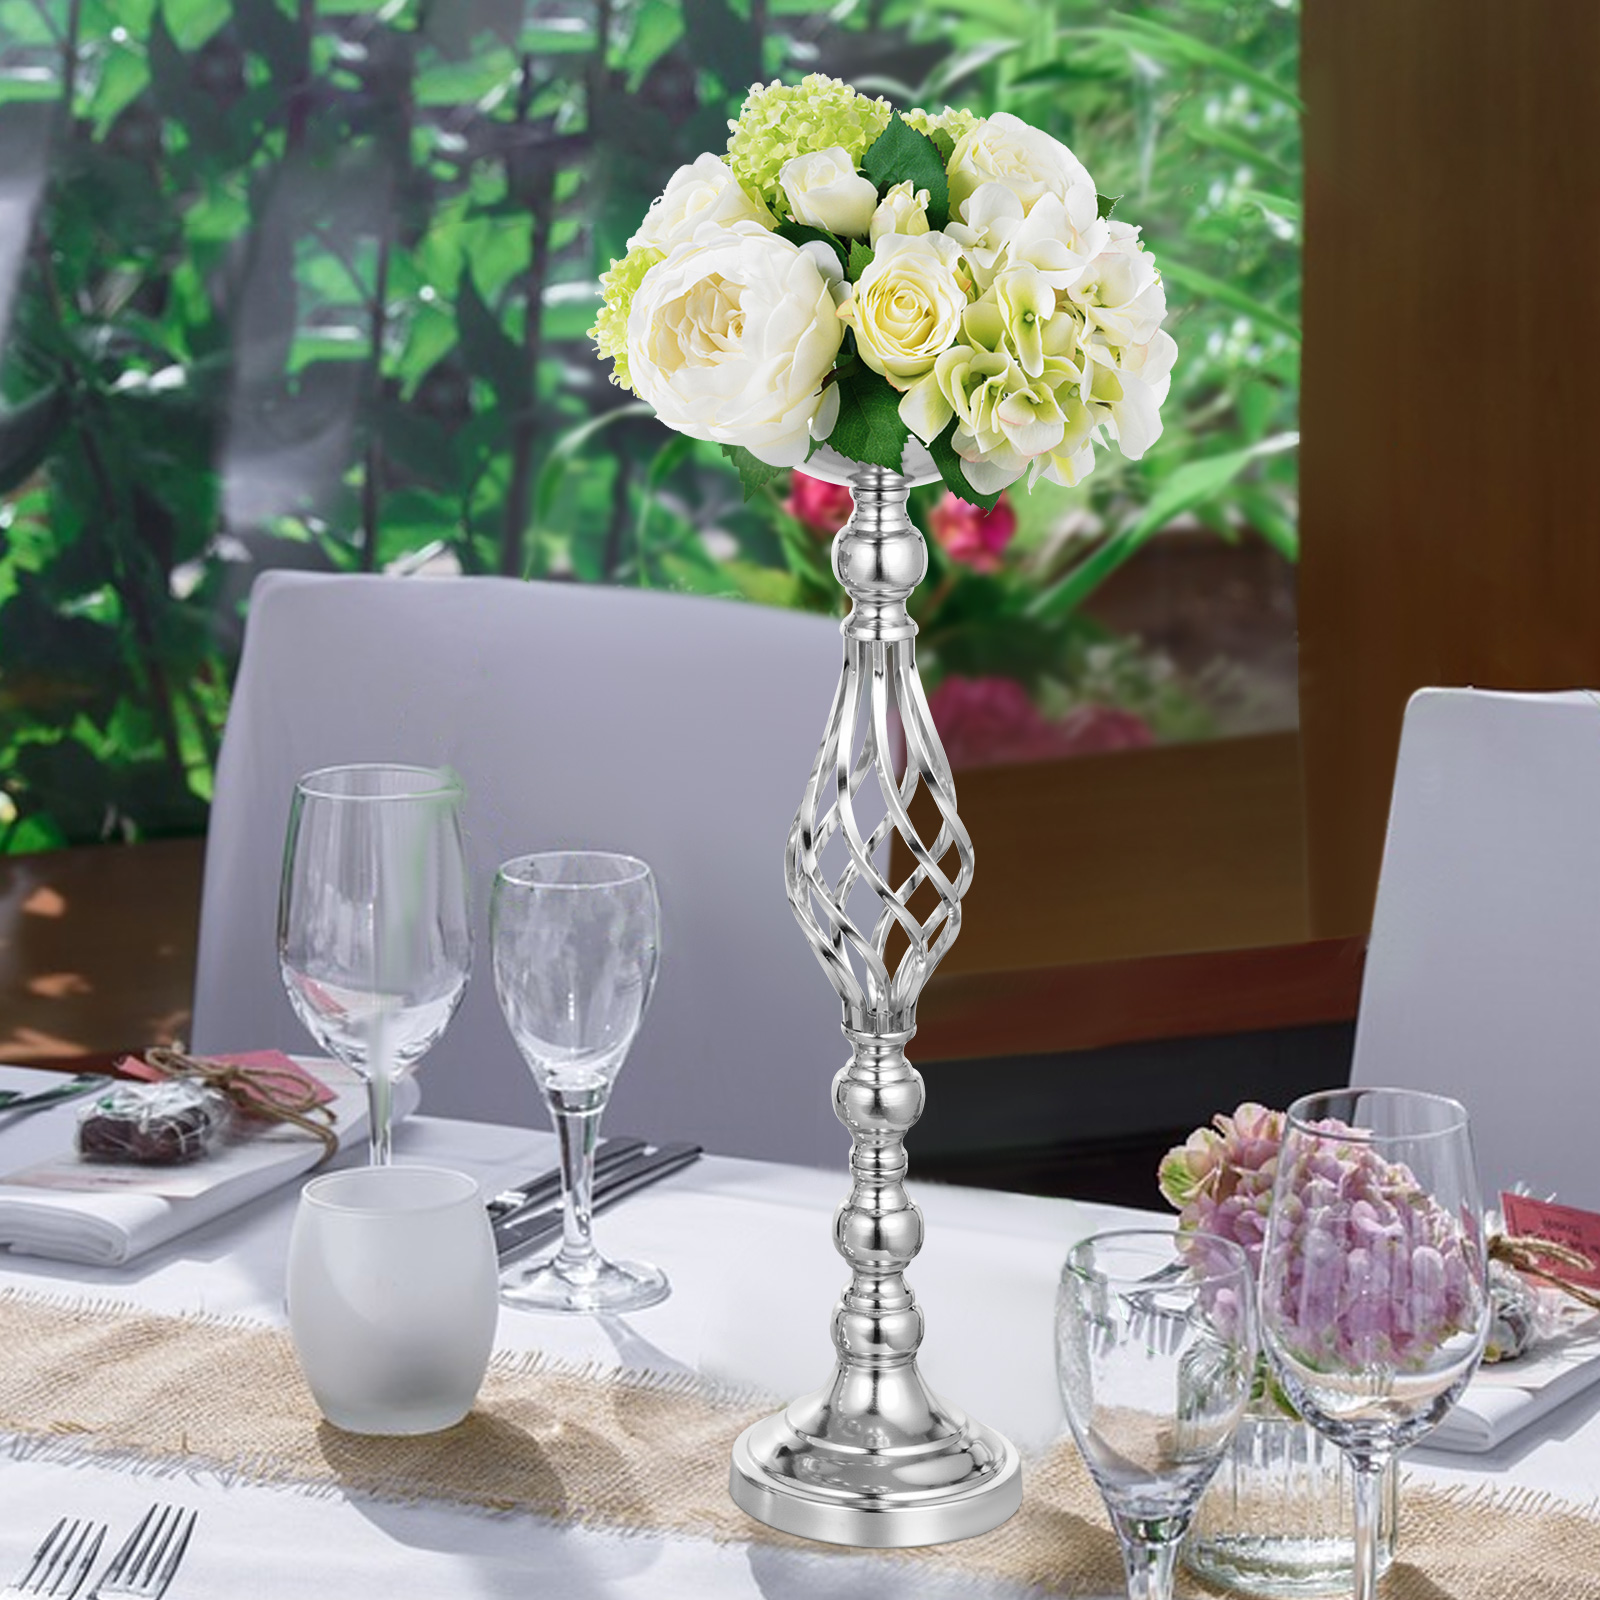 Flower-Rack-for-Wedding-Metal-Candle-Stand-4-11pcs-Centerpiece-Flower-Vase thumbnail 93